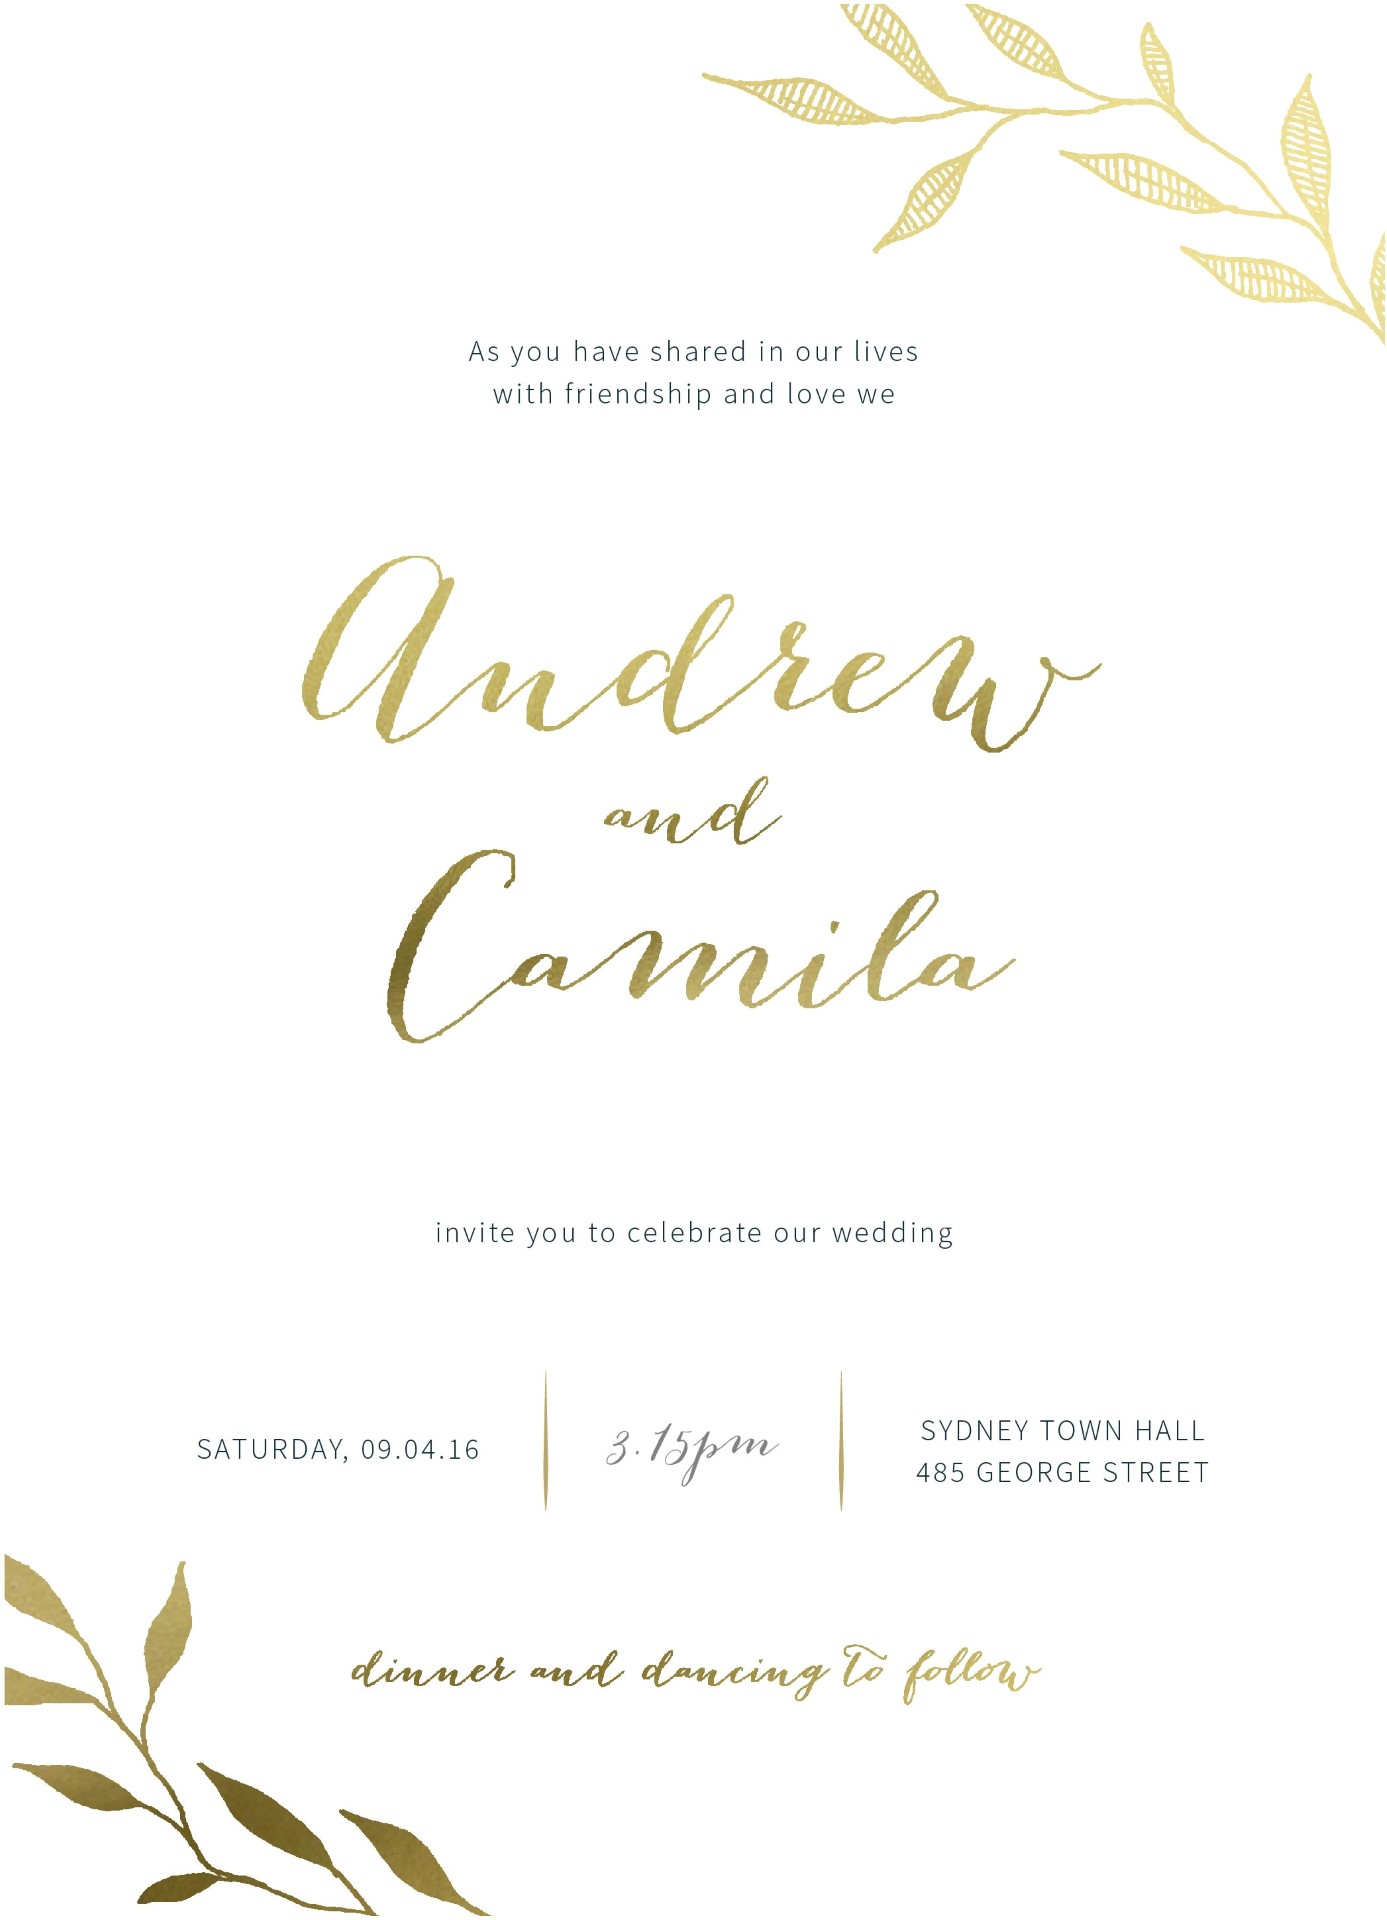 Wedding invitations online designs by australian designers leaves wedding invitations stopboris Choice Image